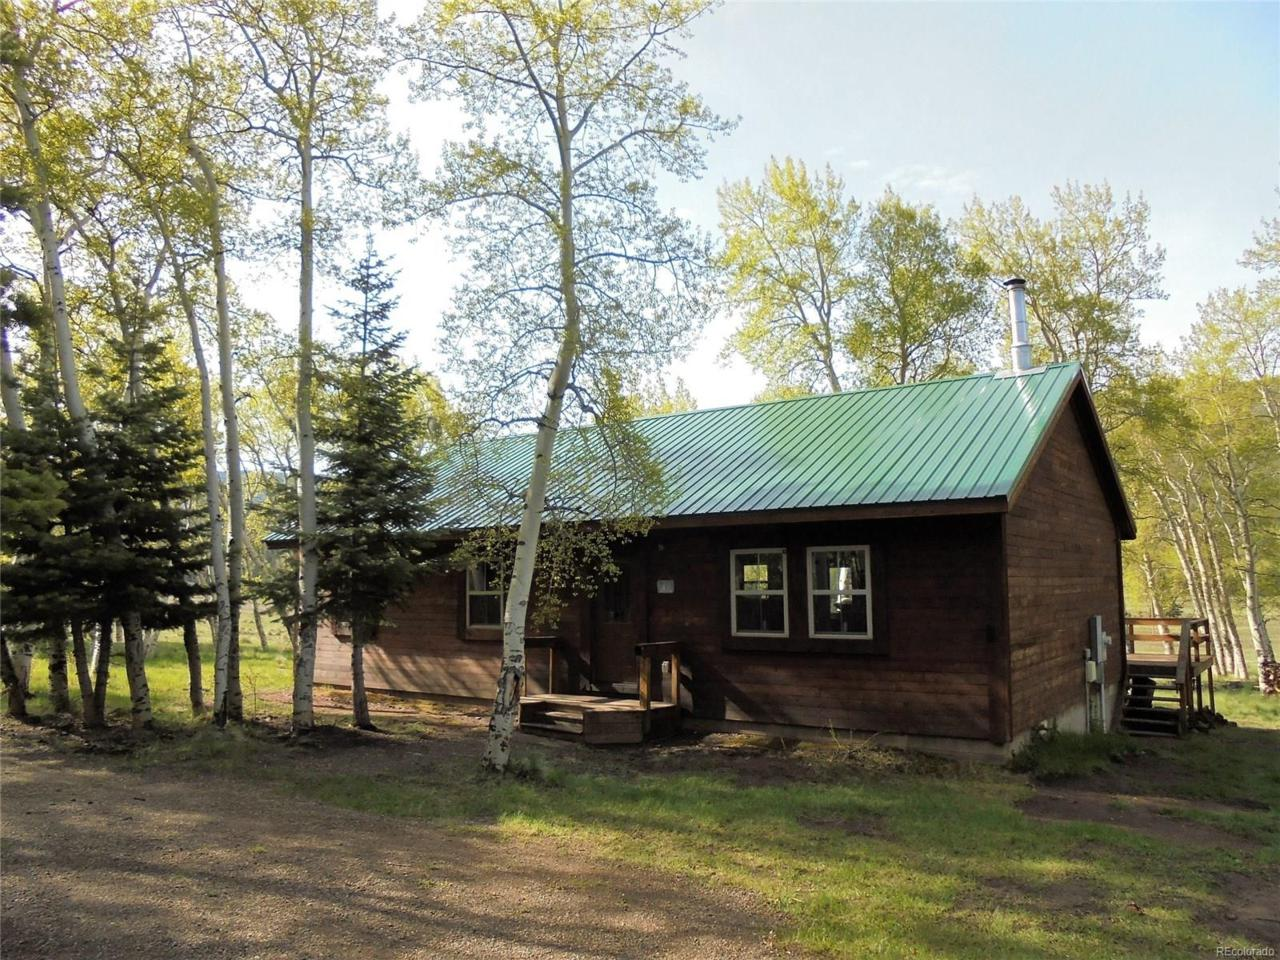 2924 Ferry Loop, Fort Garland, CO 81133 (MLS #2130022) :: 8z Real Estate